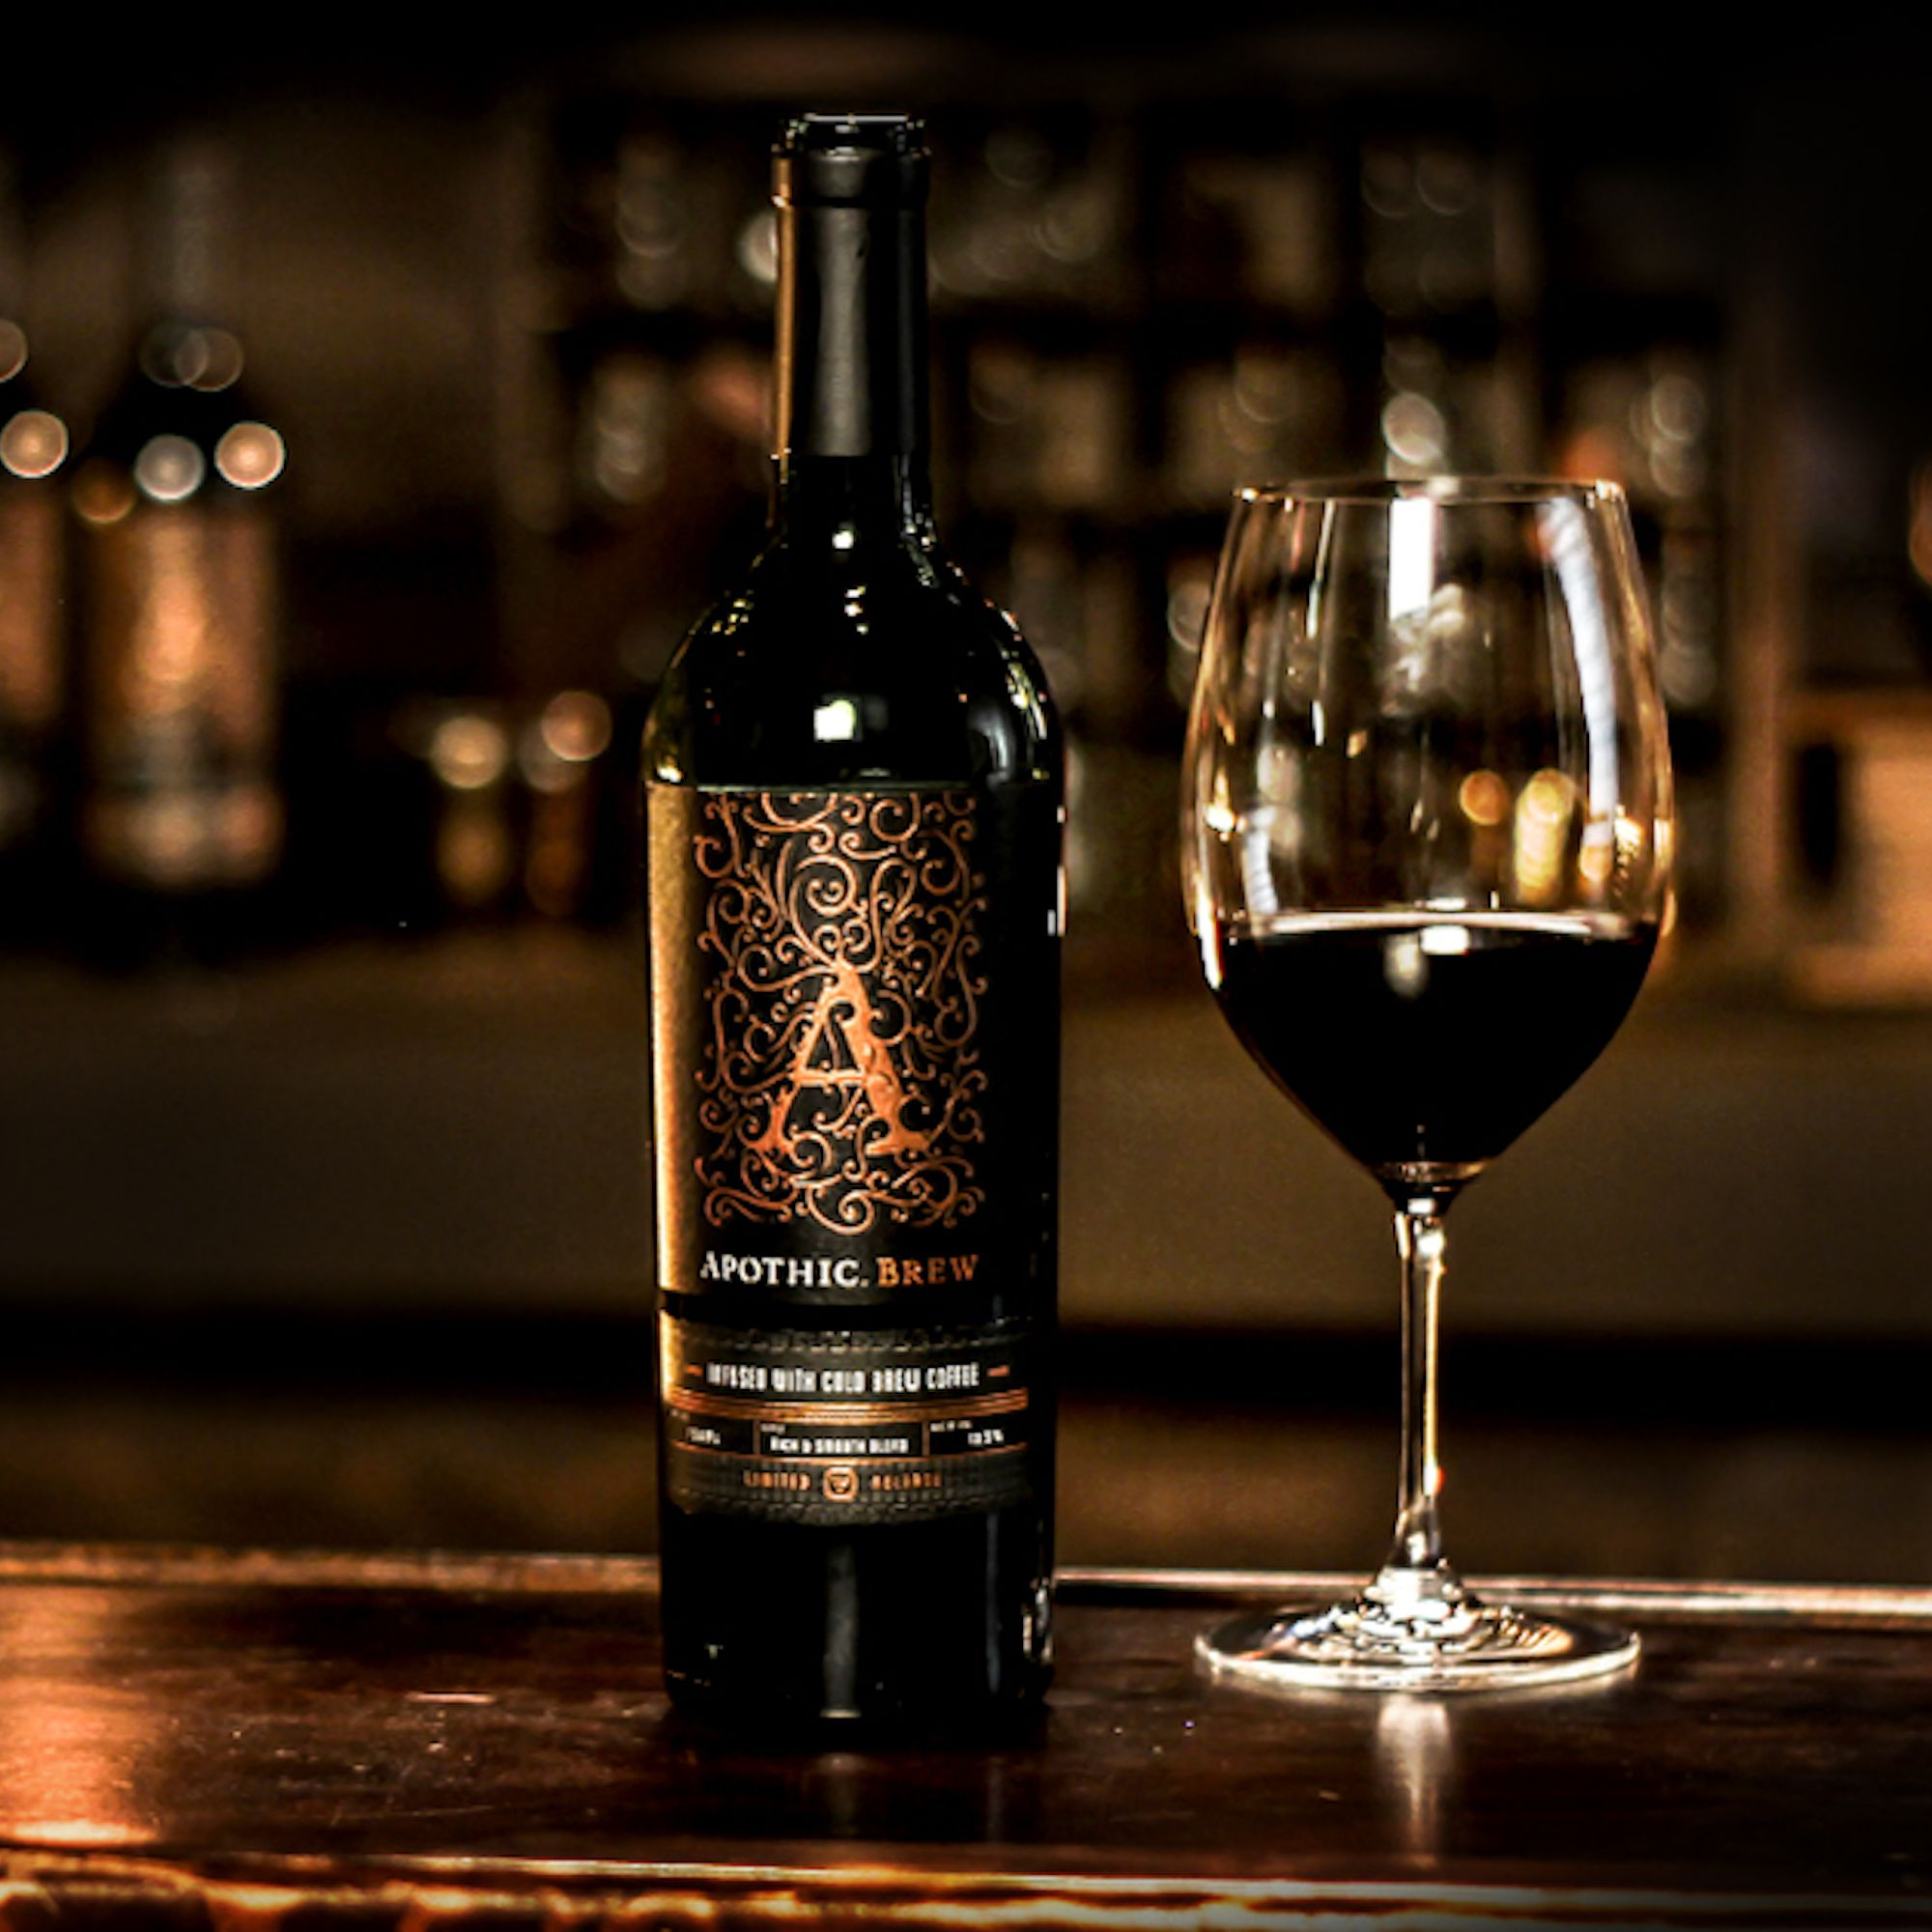 Apothic Wine offers a new type of pour